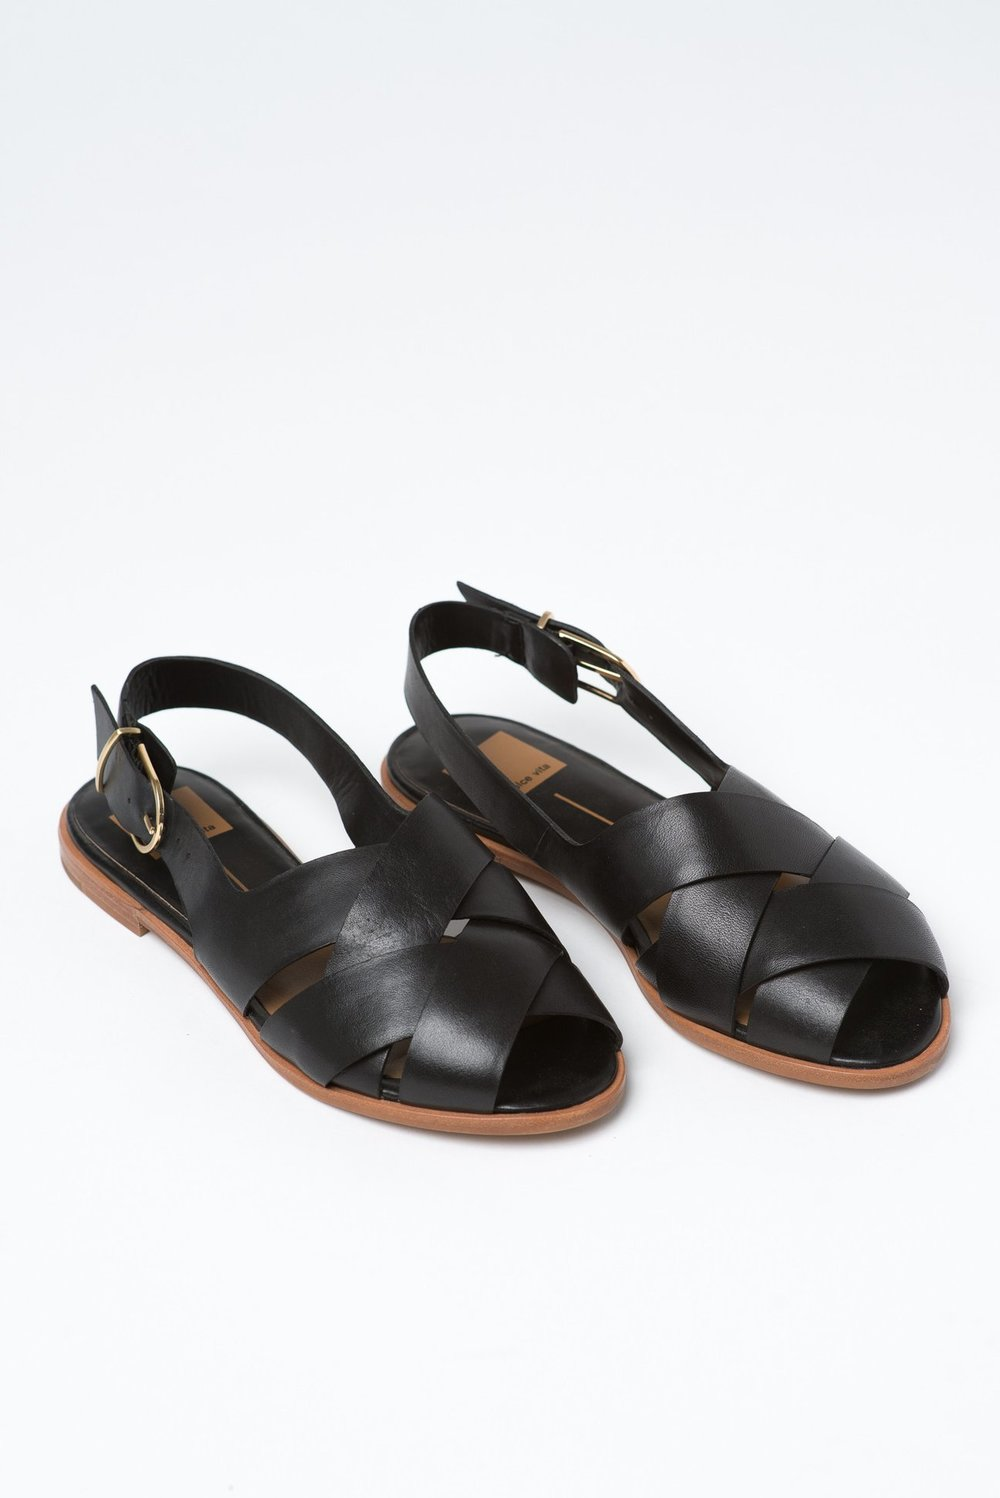 Dolce Vita the Bay Sandals - $42